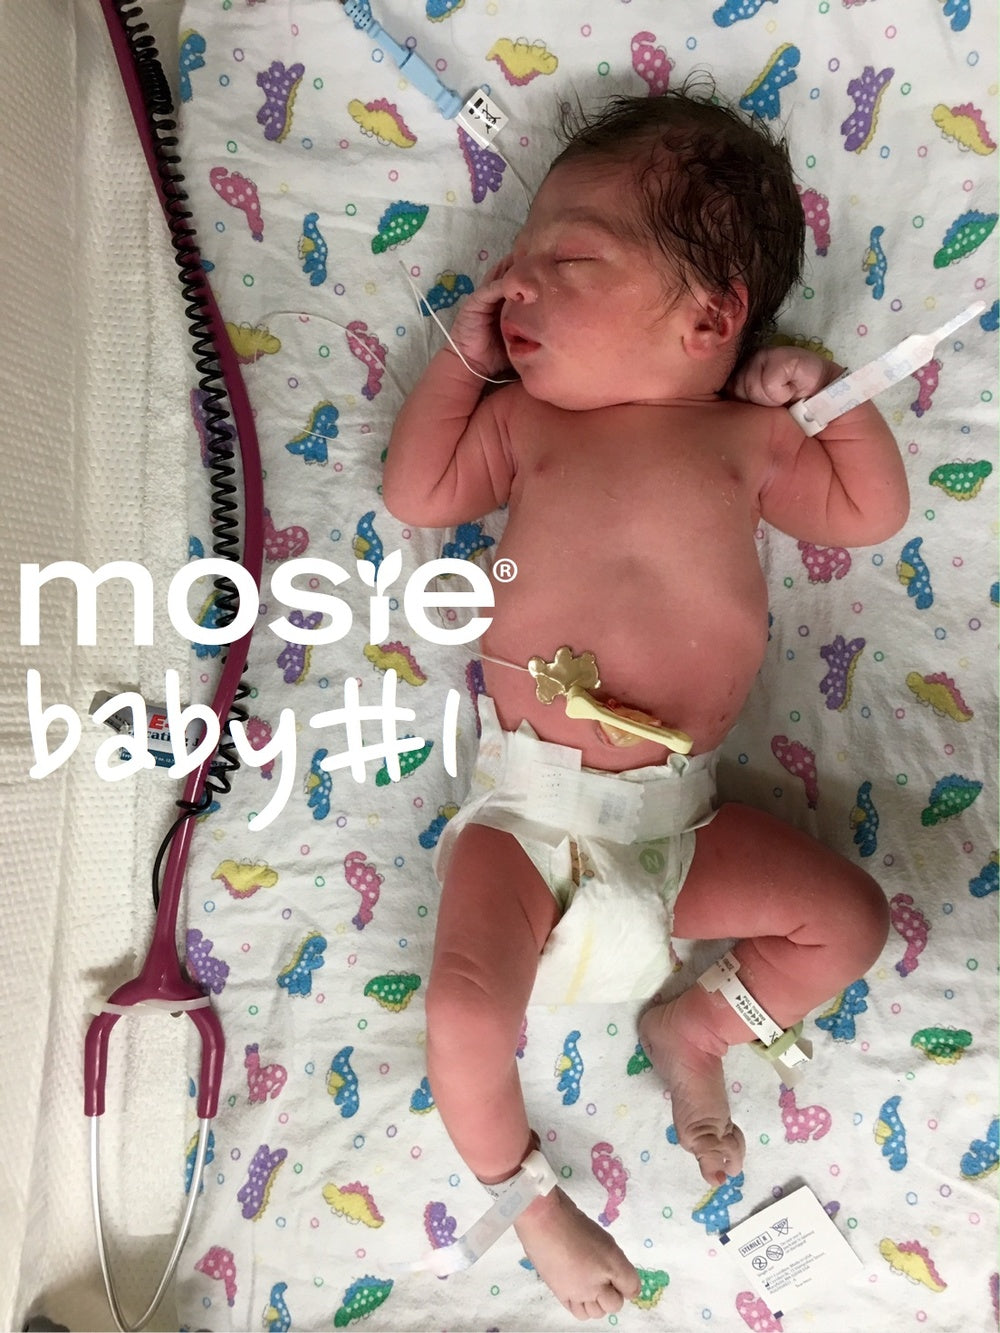 newborn mosie baby, Son of the creators of Mosie